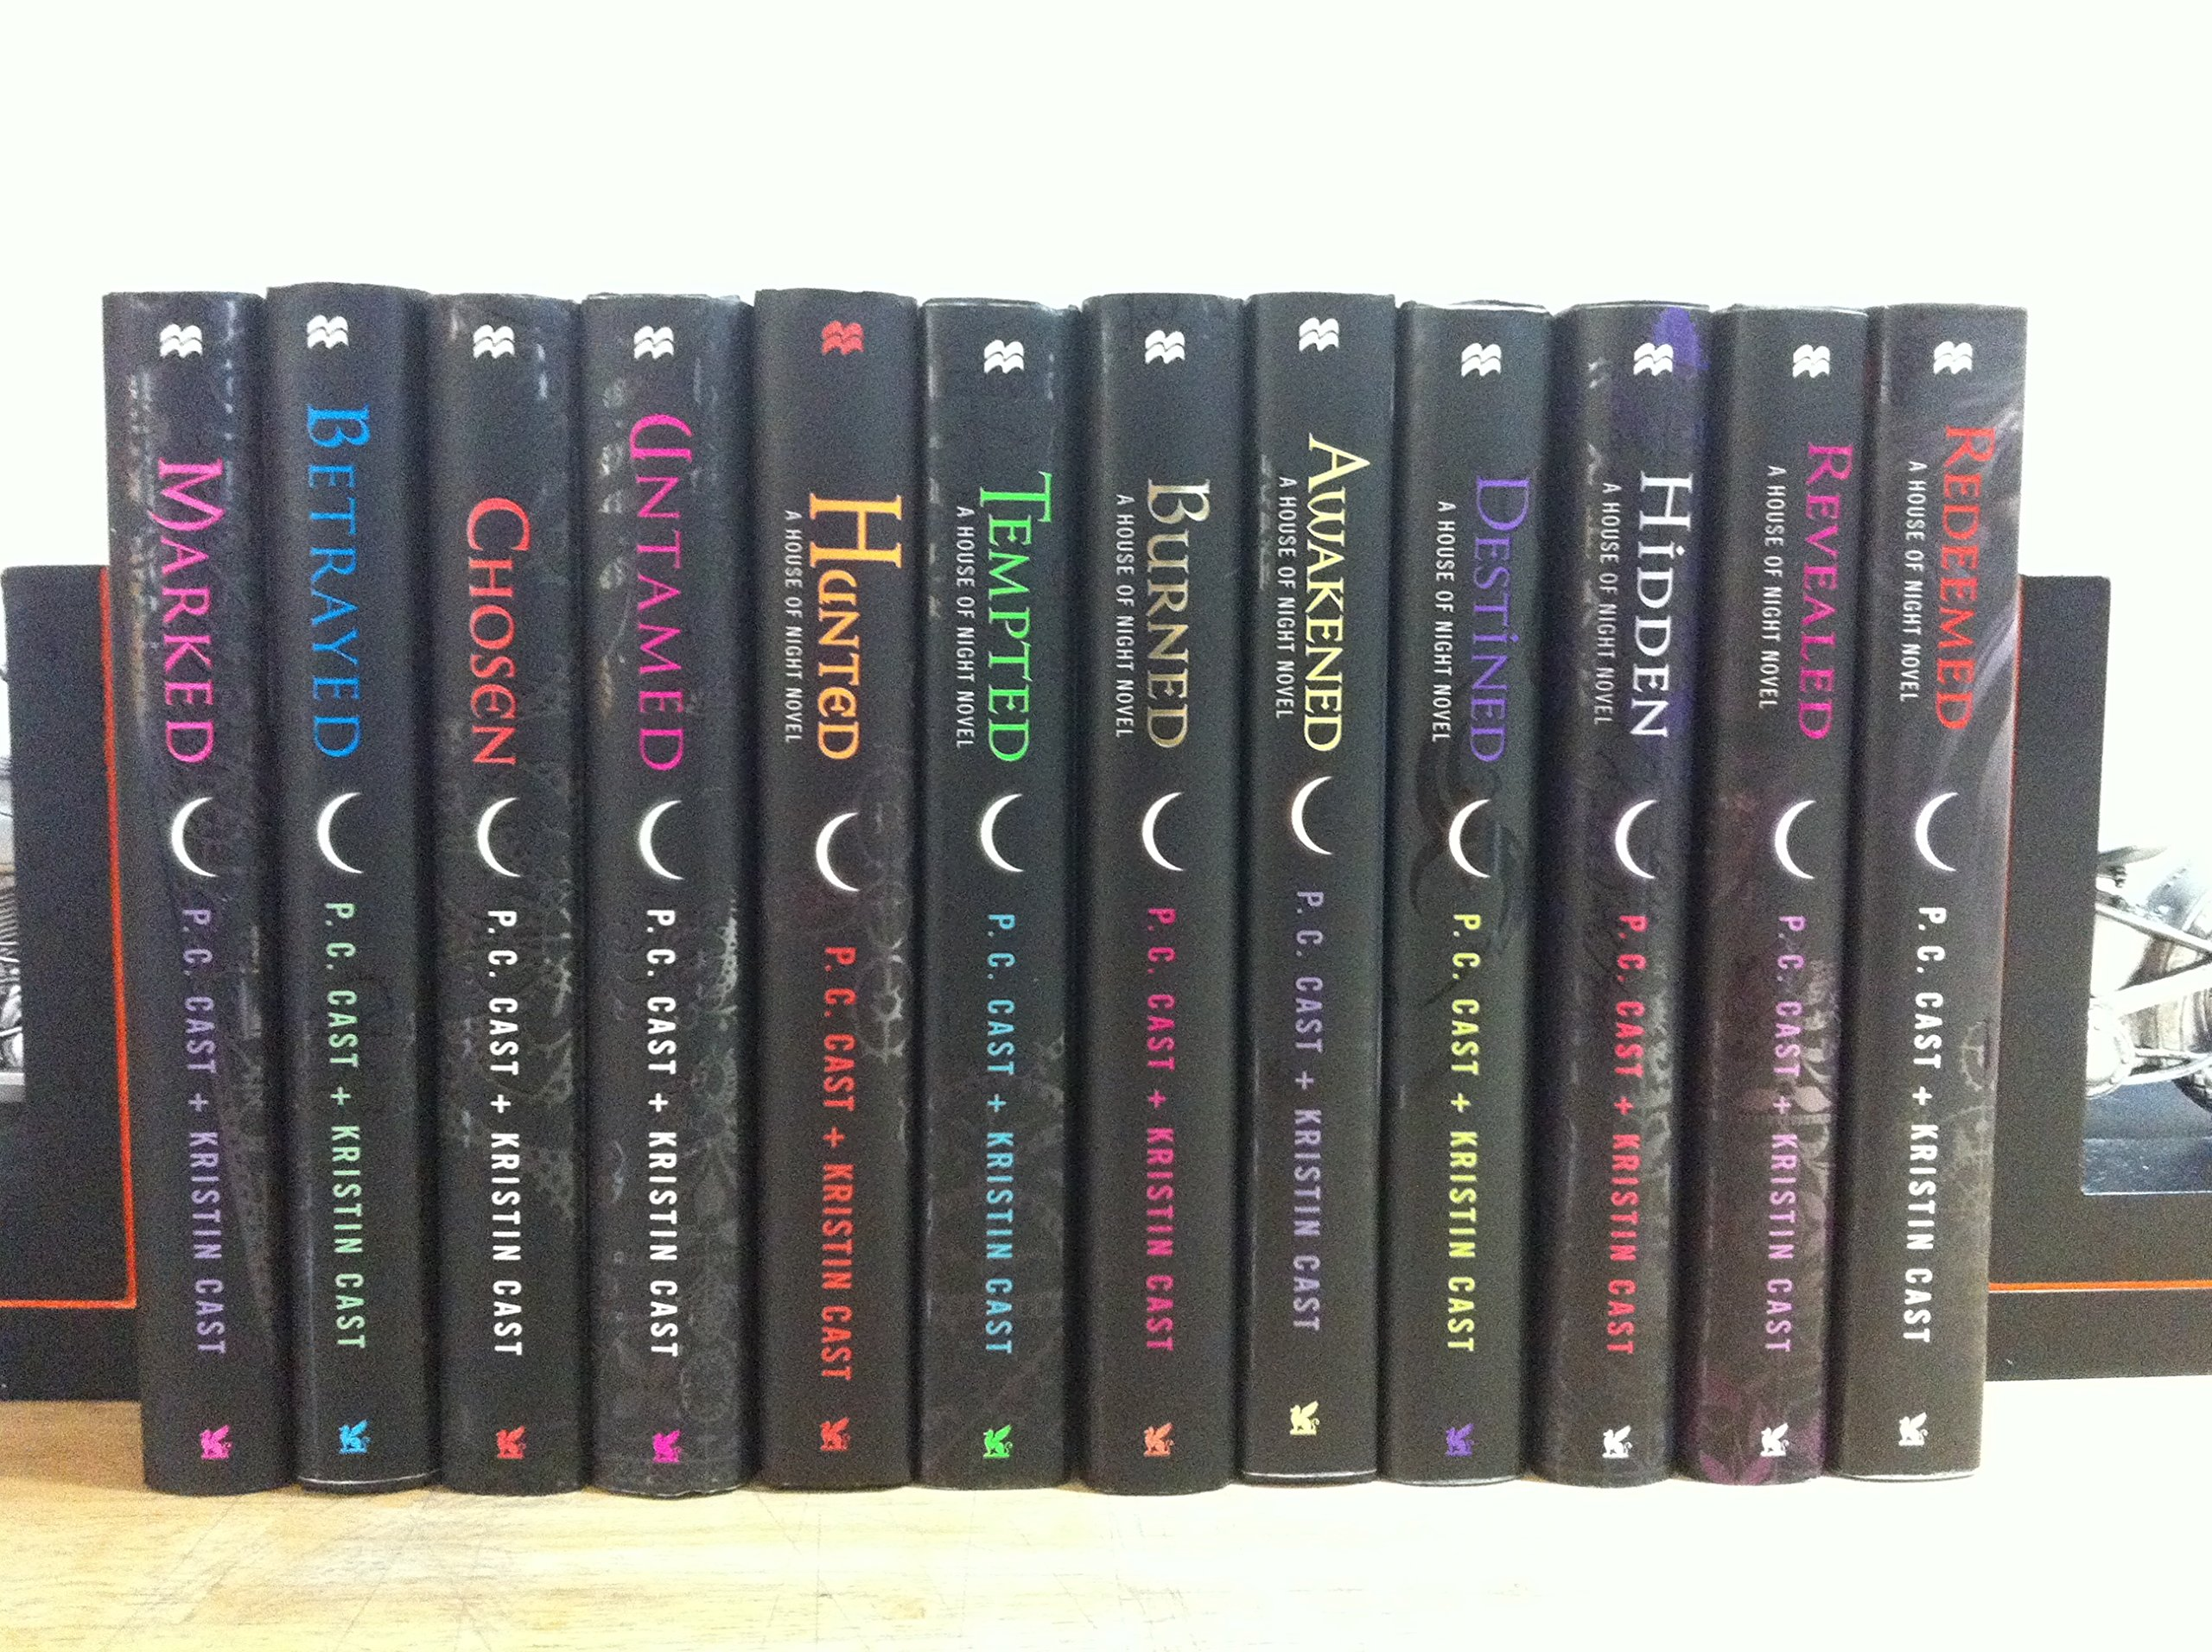 The vampire book series for House of Night.